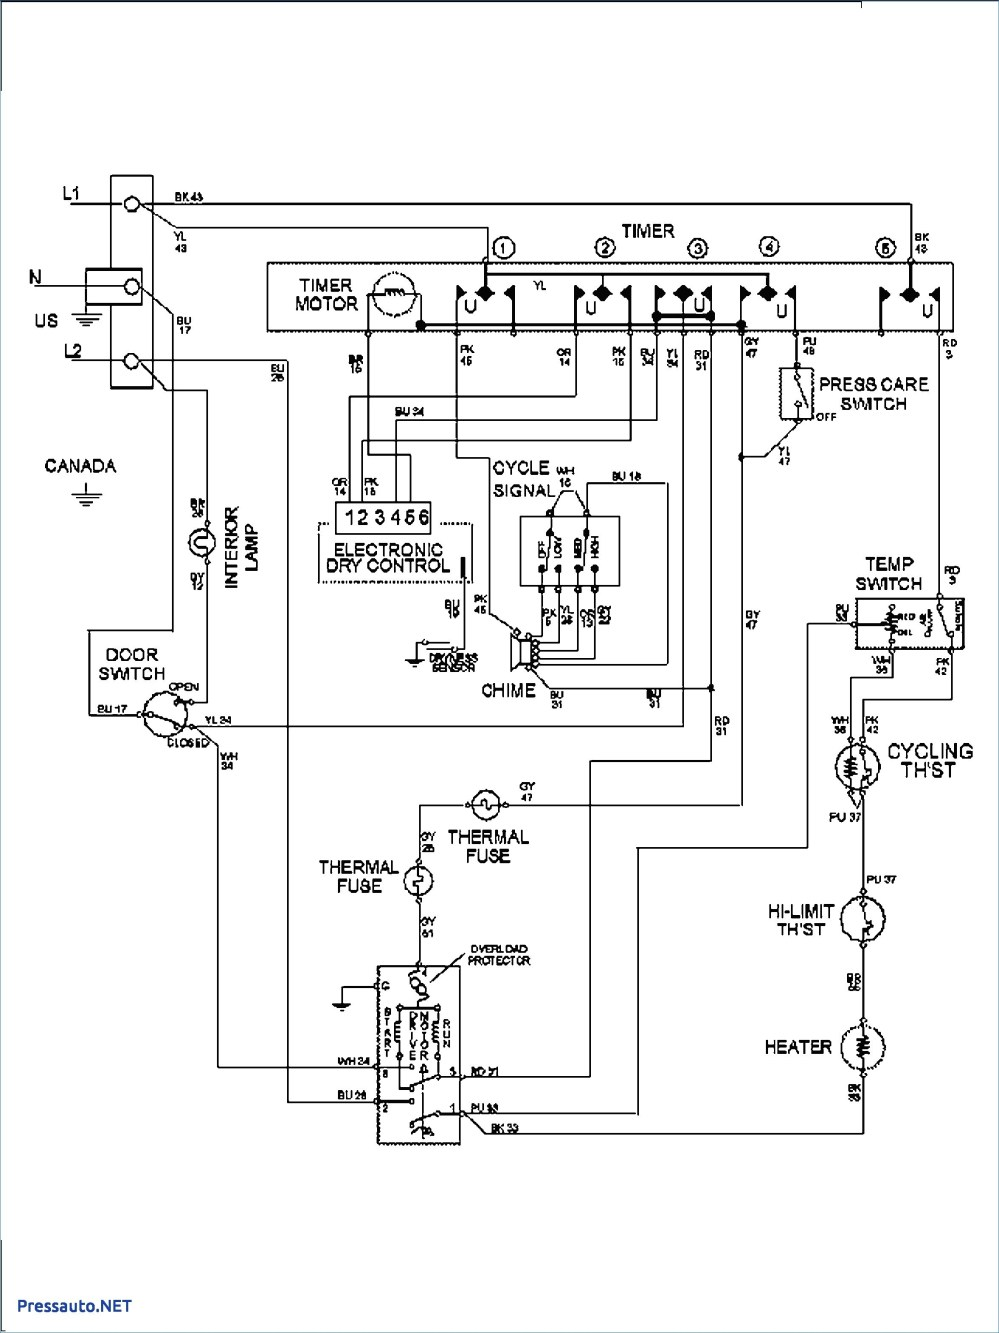 medium resolution of maytag wall oven wiring diagram wiring diagrams konsult maytag gemini double oven wiring diagram maytag oven wiring